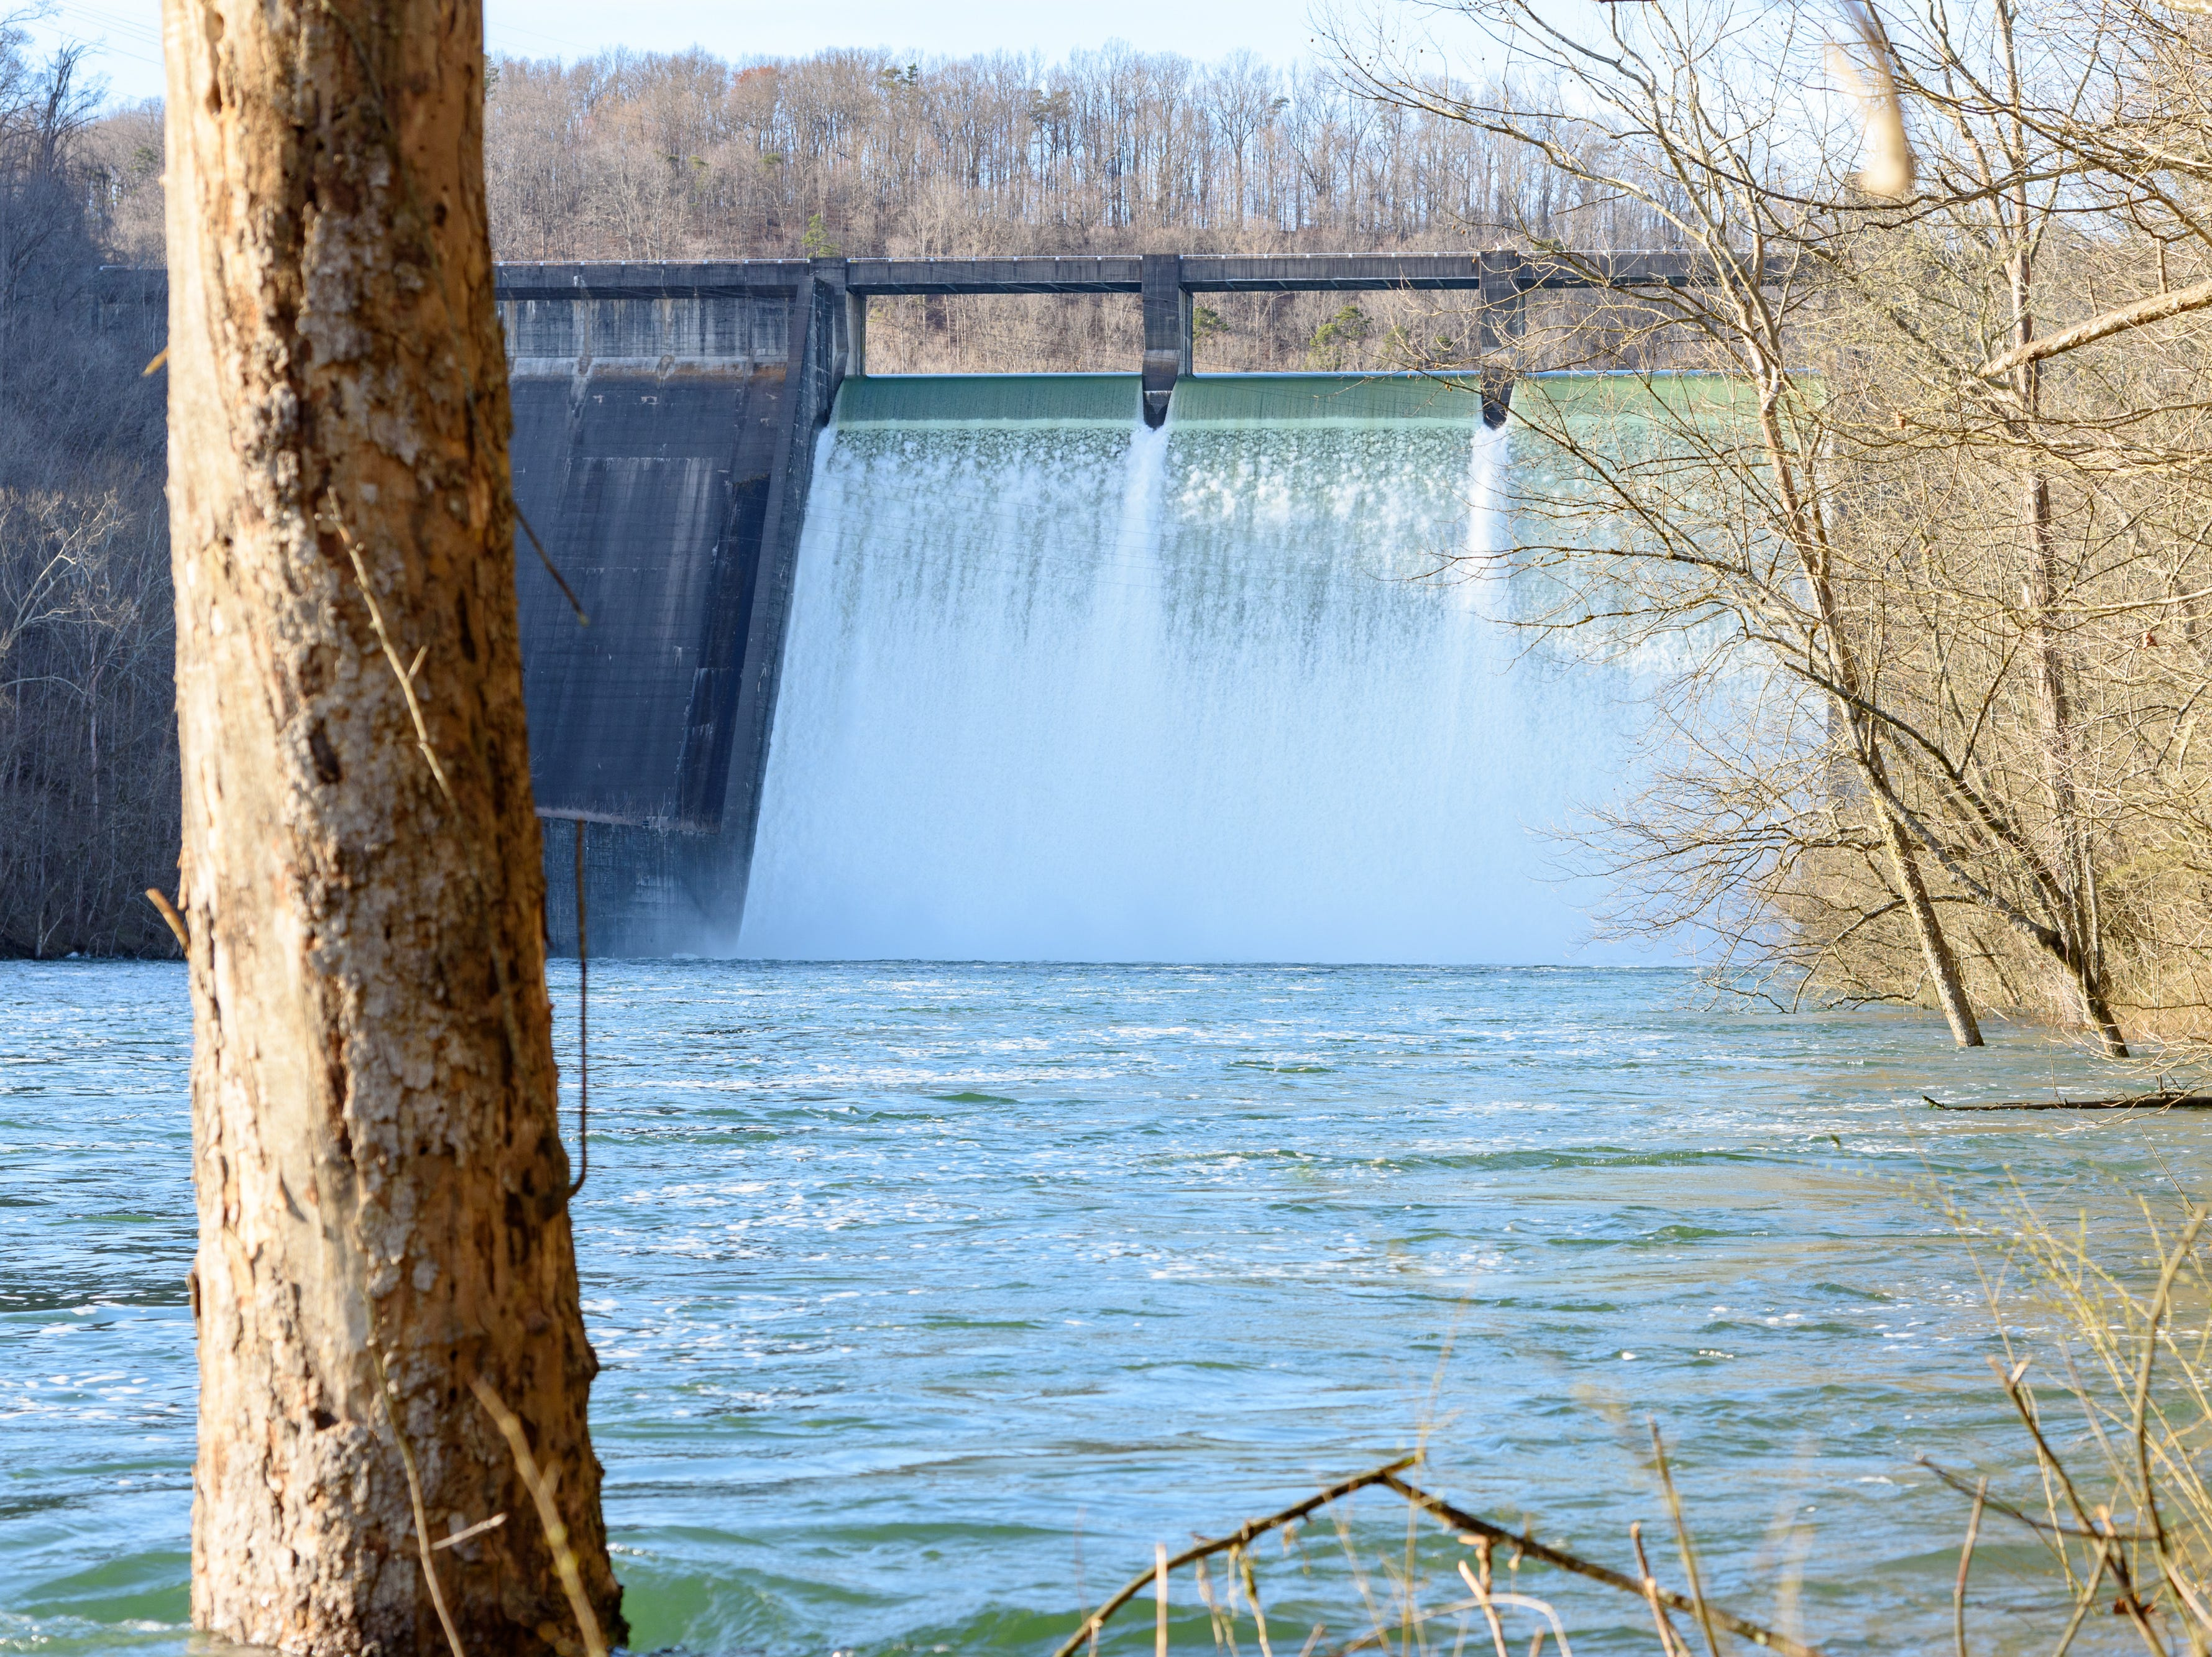 Water spills over the flood gates at Norris Dam in Anderson County on Monday Feb. 25, 2019.